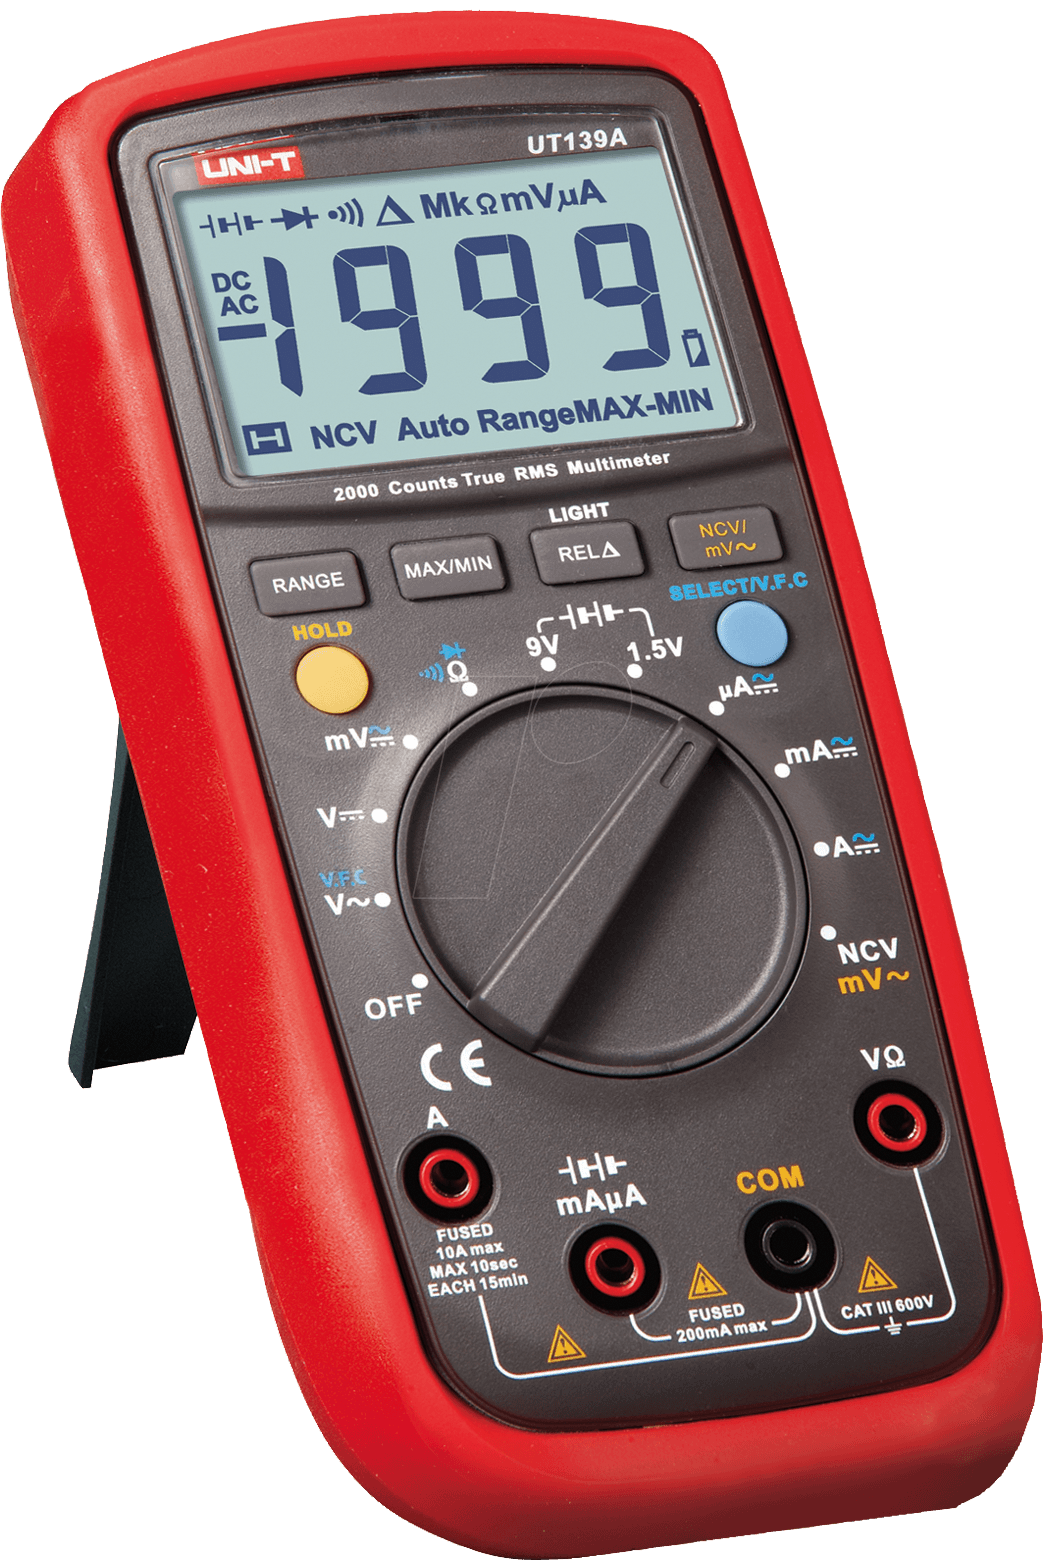 ut 139b multimeter digital 4000 counts trms bei reichelt elektronik. Black Bedroom Furniture Sets. Home Design Ideas